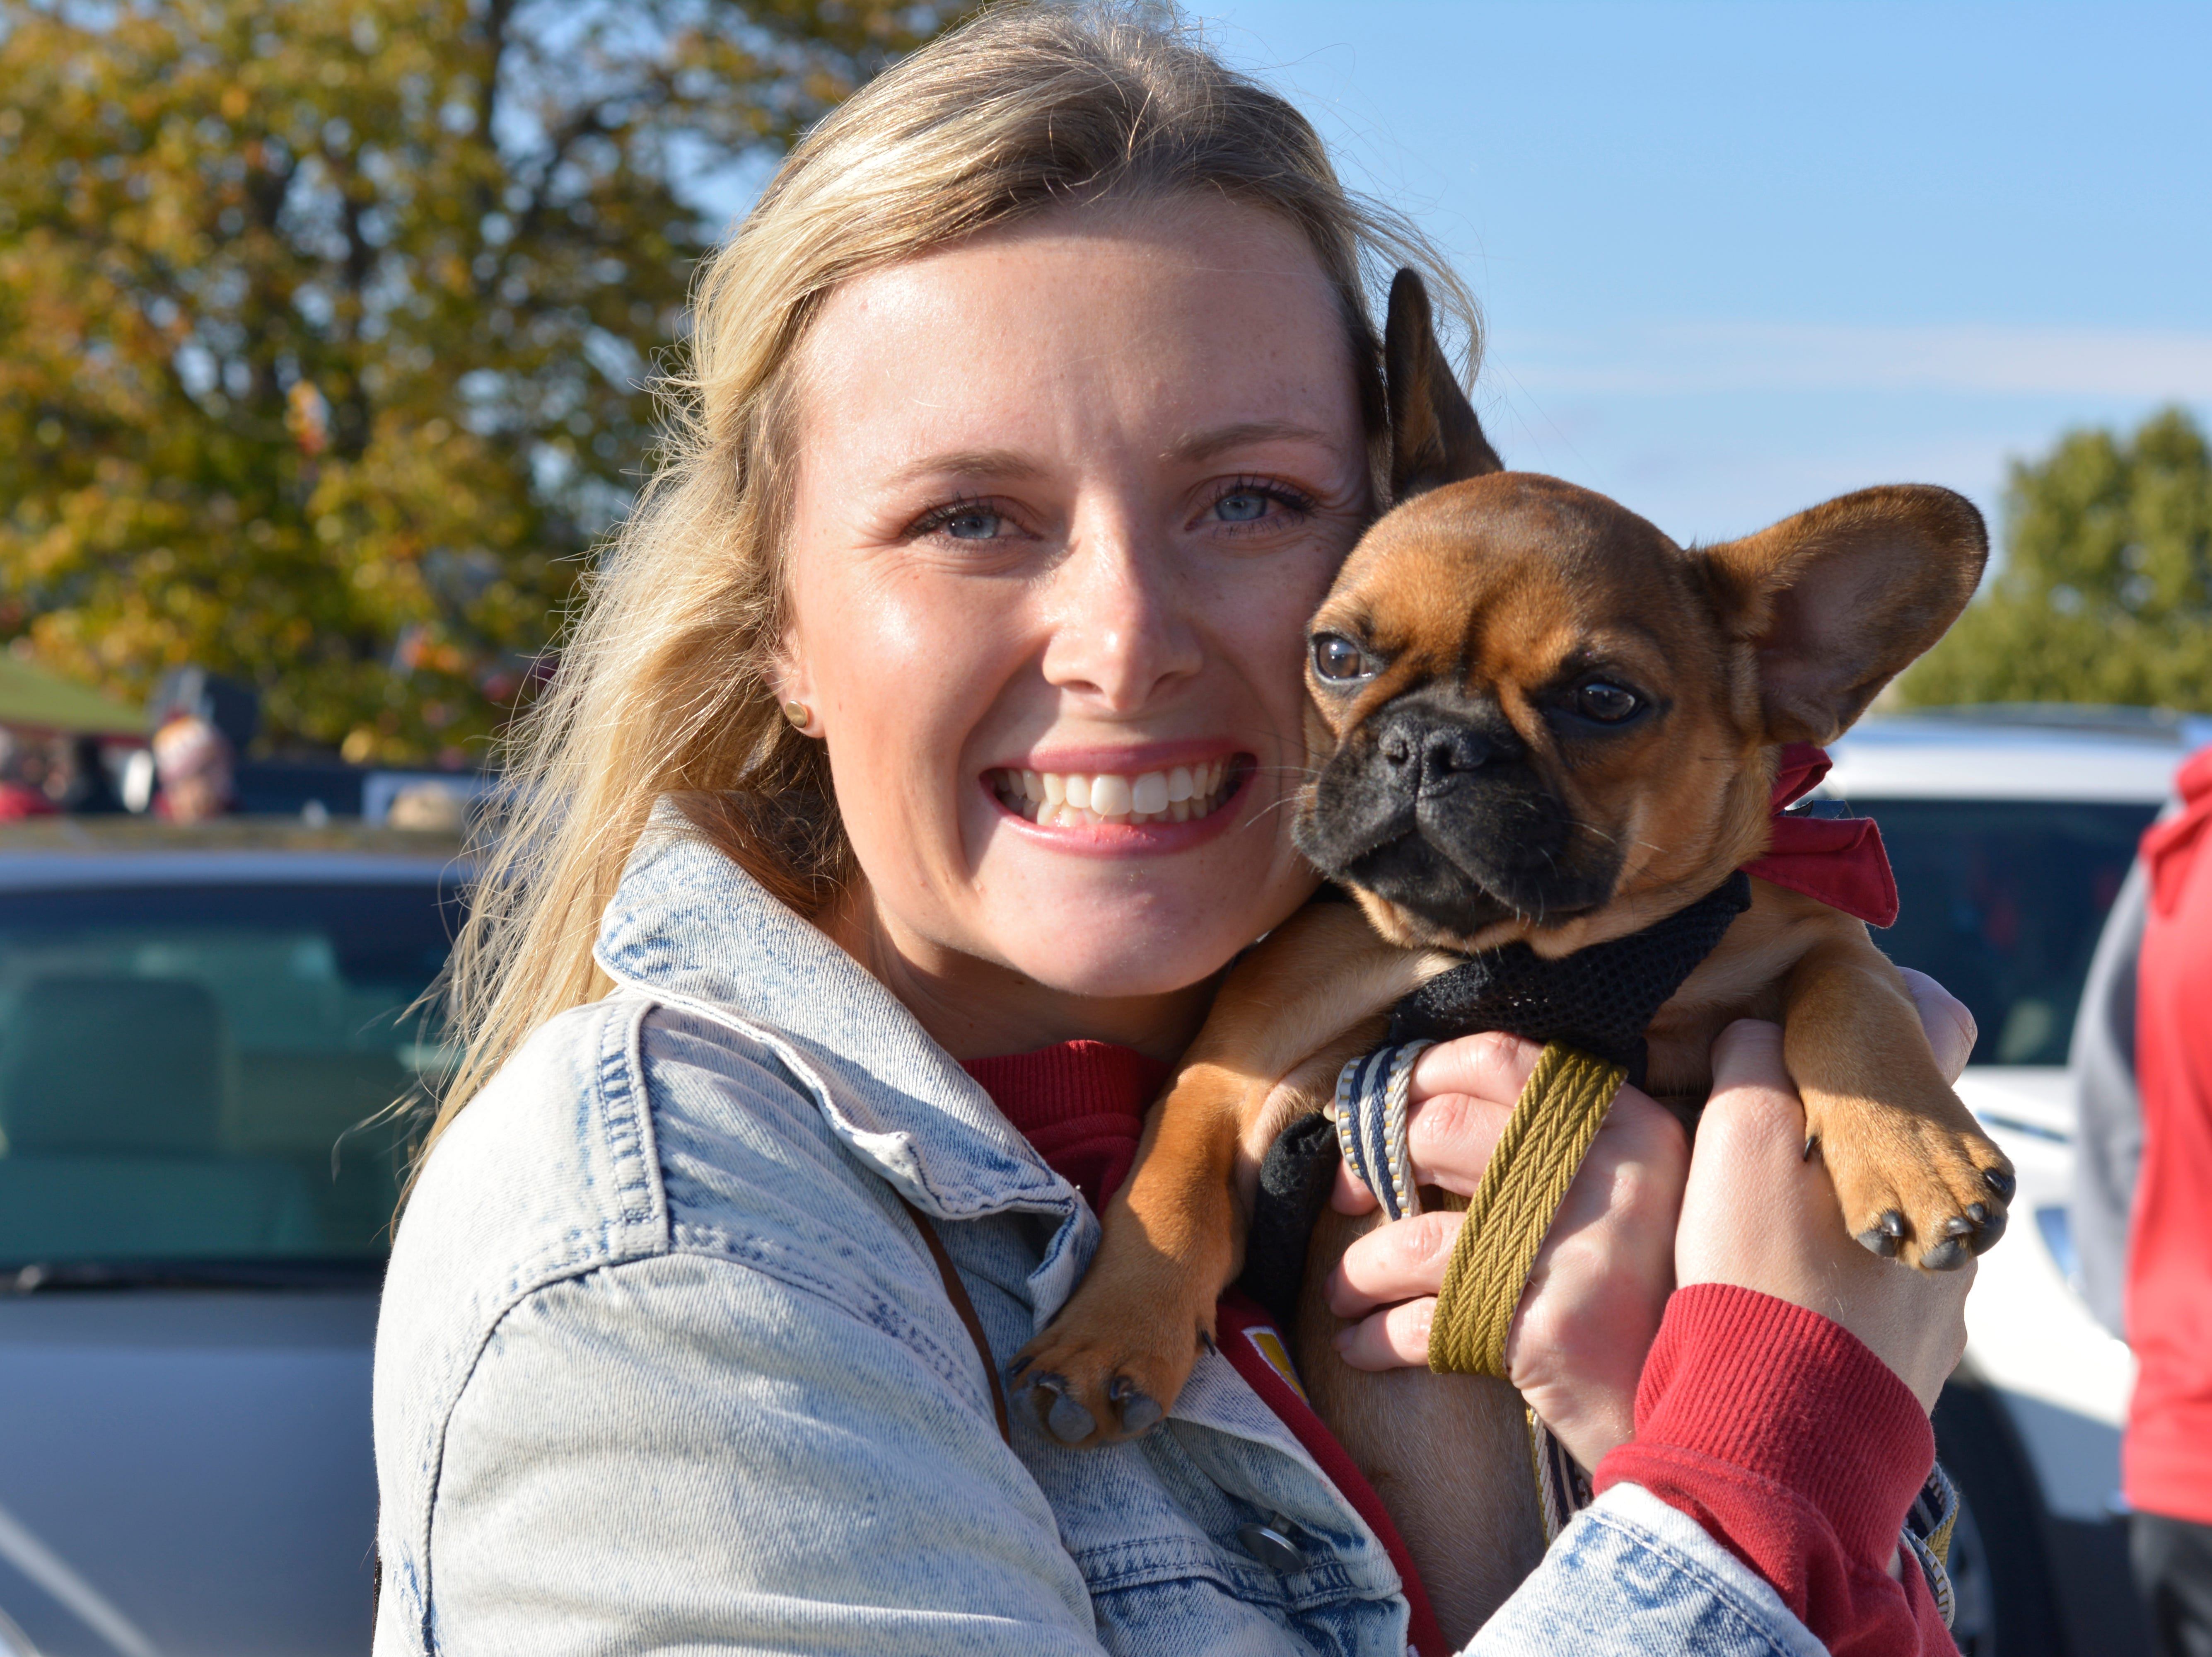 Cassidy Longnecker and her dog Milo before the Iowa State University football game against West Virginia in Ames on Oct. 13.